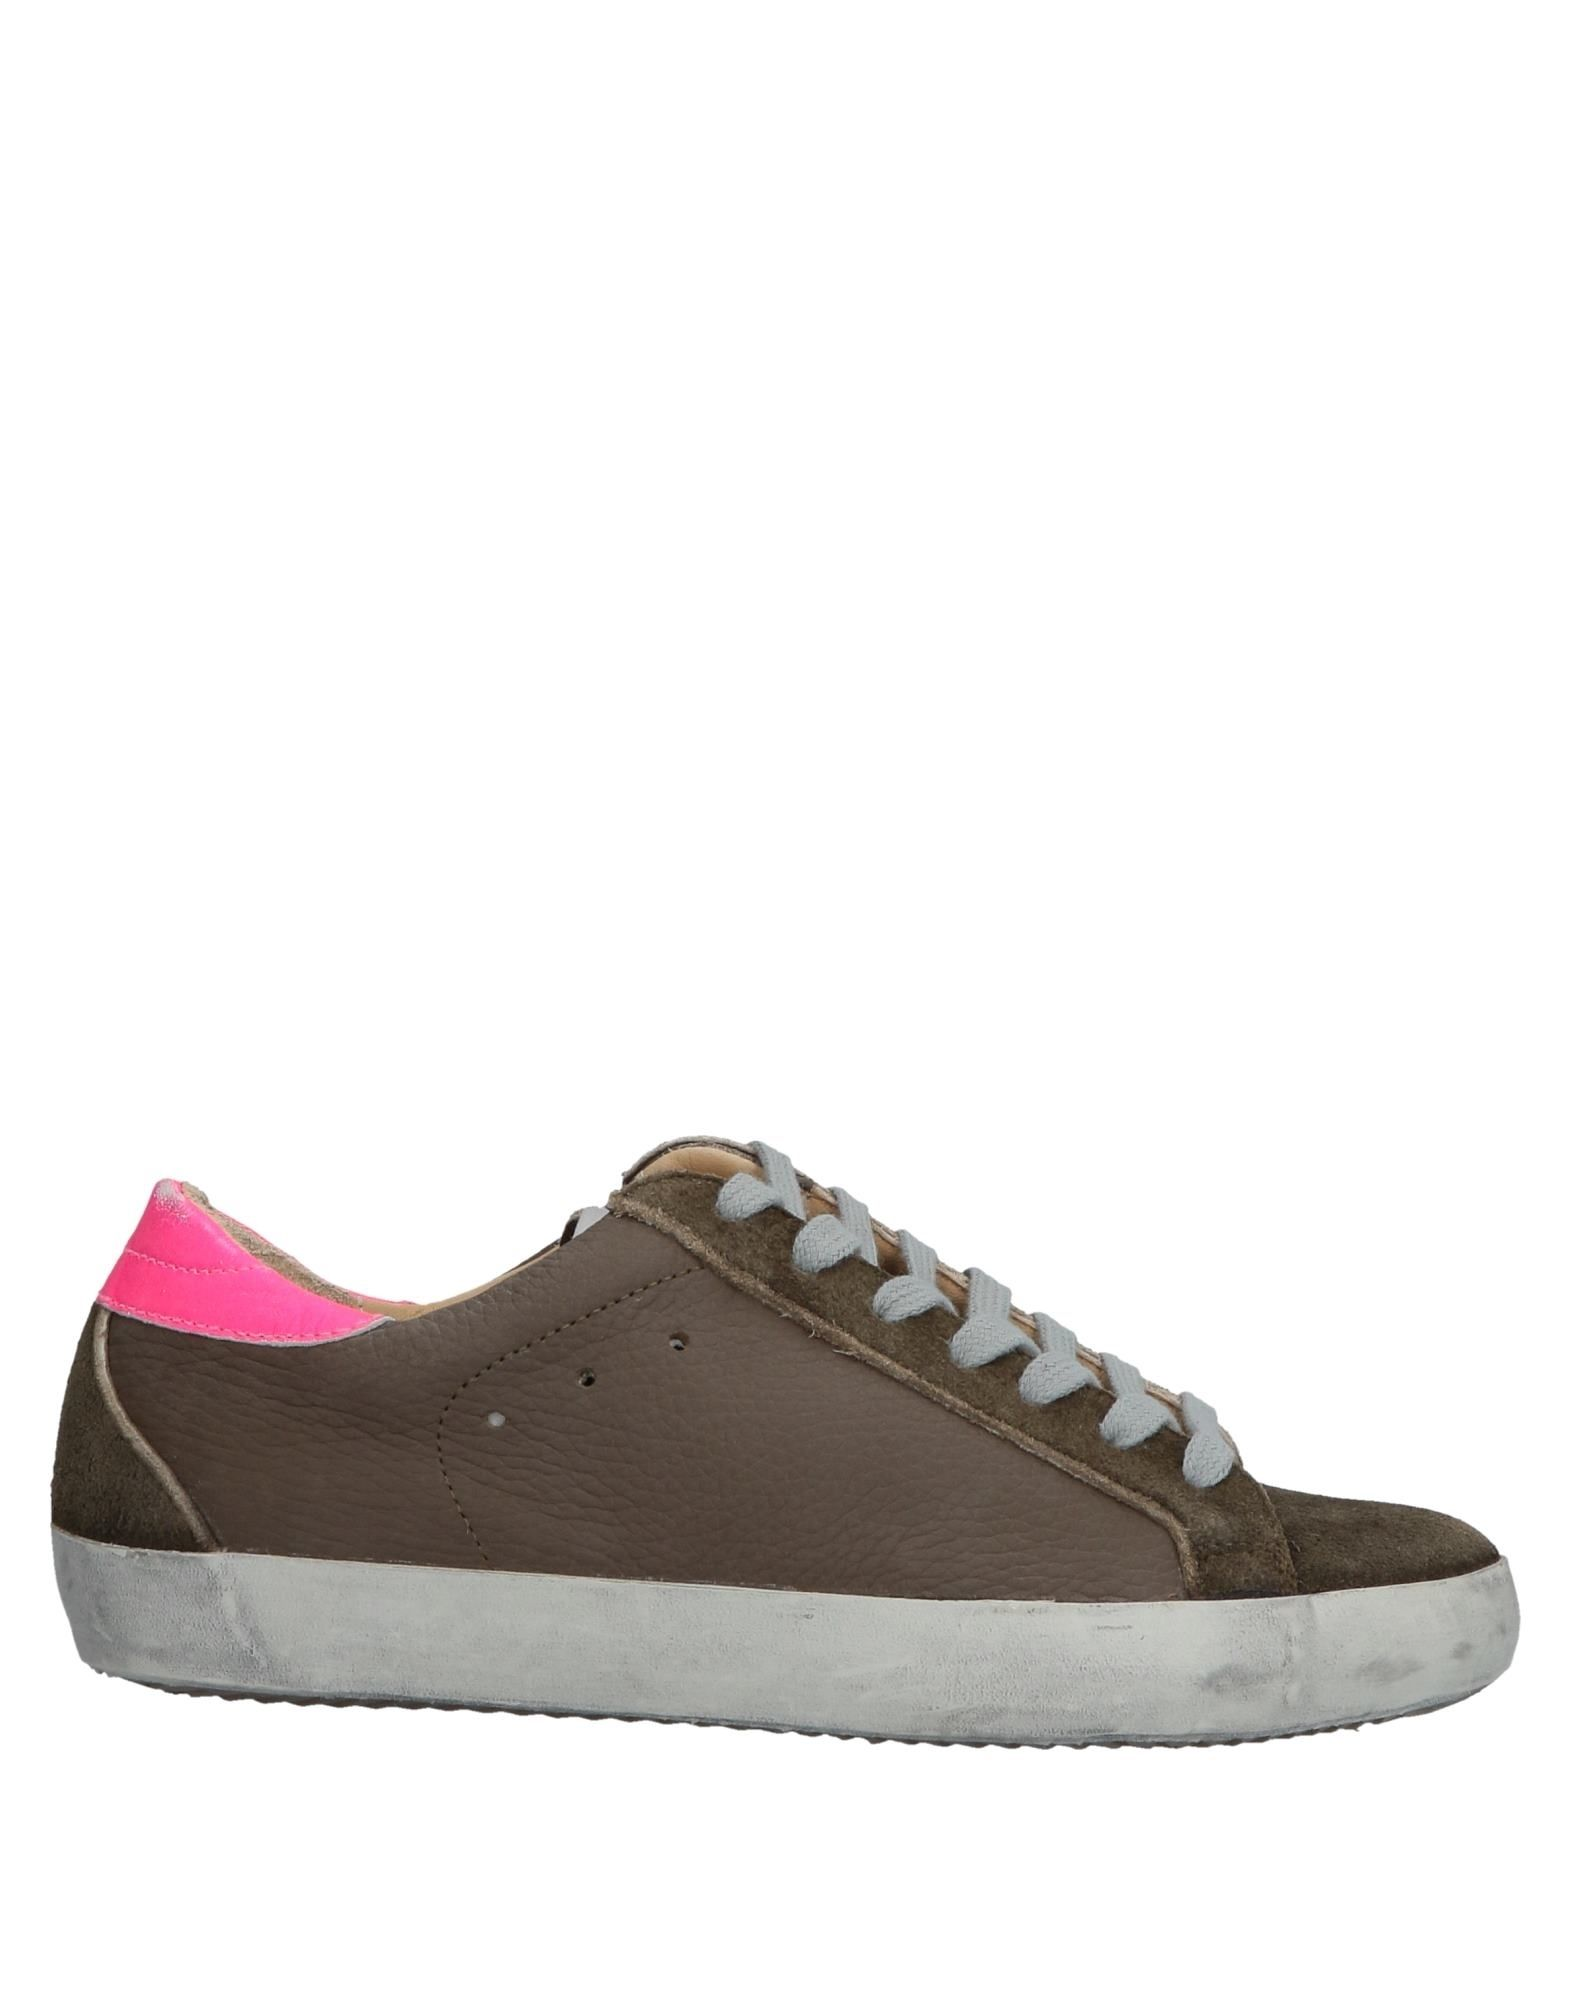 Quattrobarradodici on Sneakers - Women Quattrobarradodici Sneakers online on Quattrobarradodici  Australia - 11573339FX e9be5c